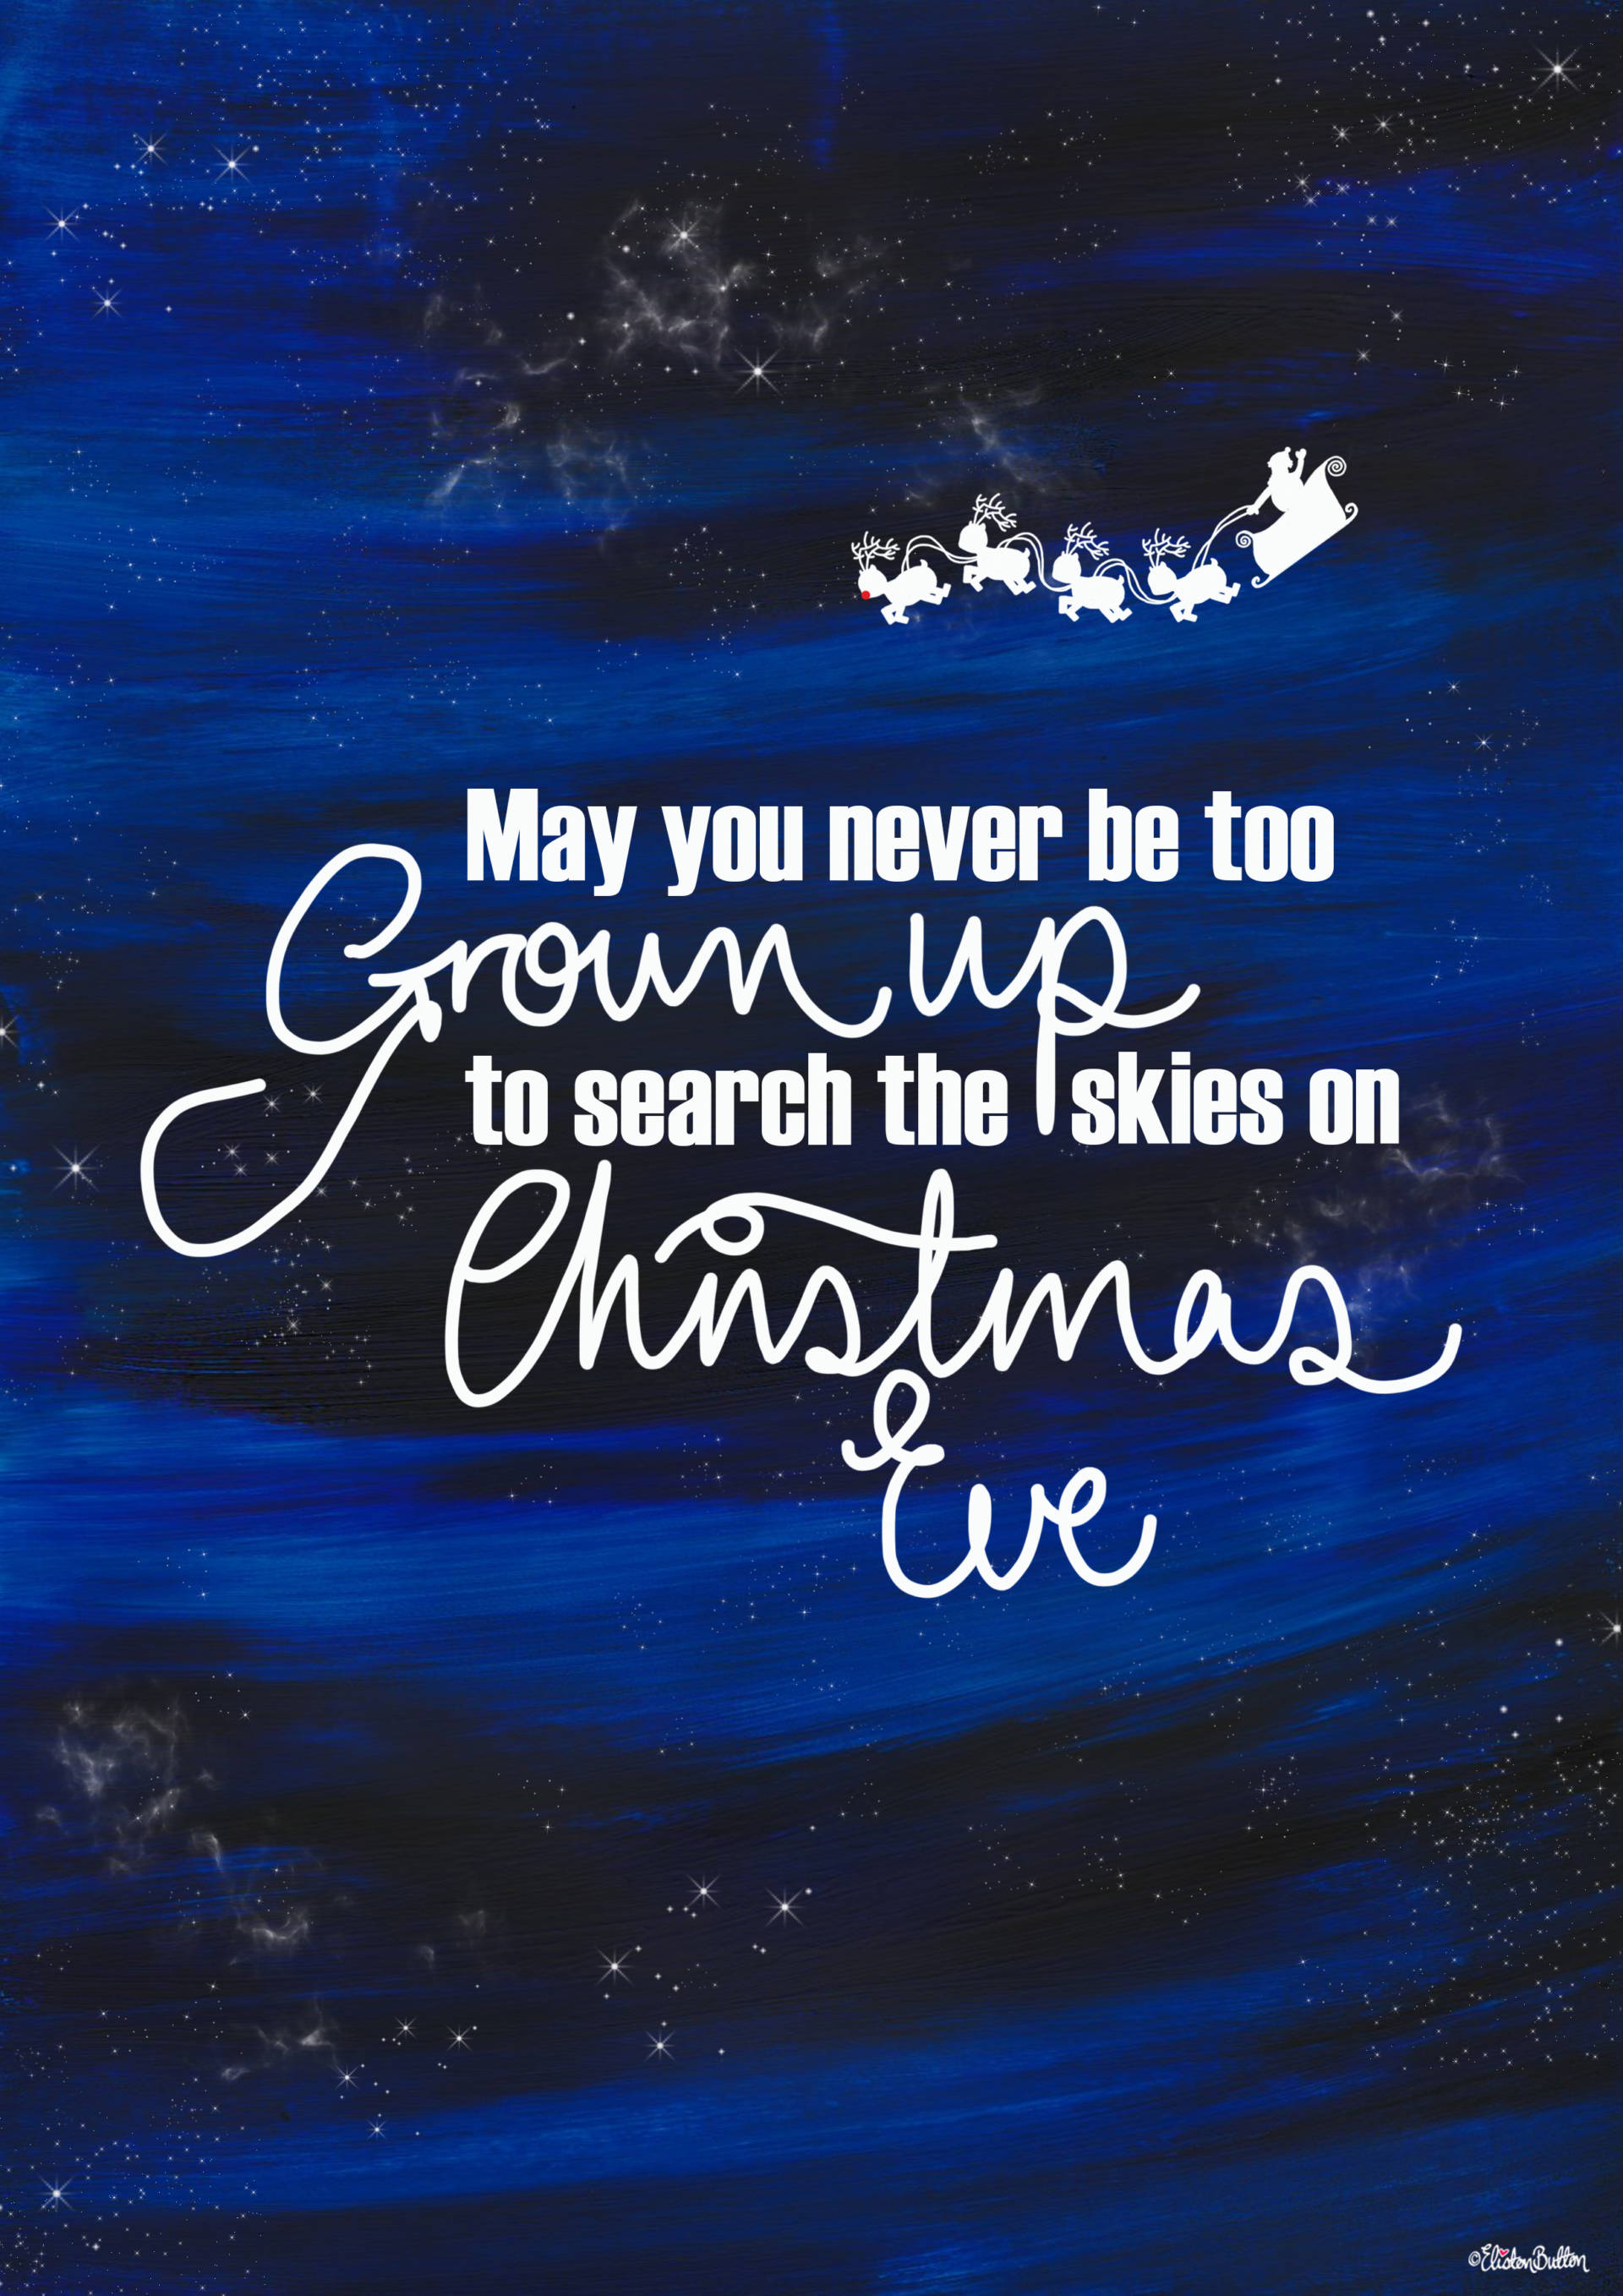 May you Never be Too Old to Search the Skies on Christmas Eve Quote by Eliston Button - Merry Christmas, Happy Holidays and a Magical New Year! at www.elistonbutton.com - Eliston Button - That Crafty Kid – Art, Design, Craft & Adventure.